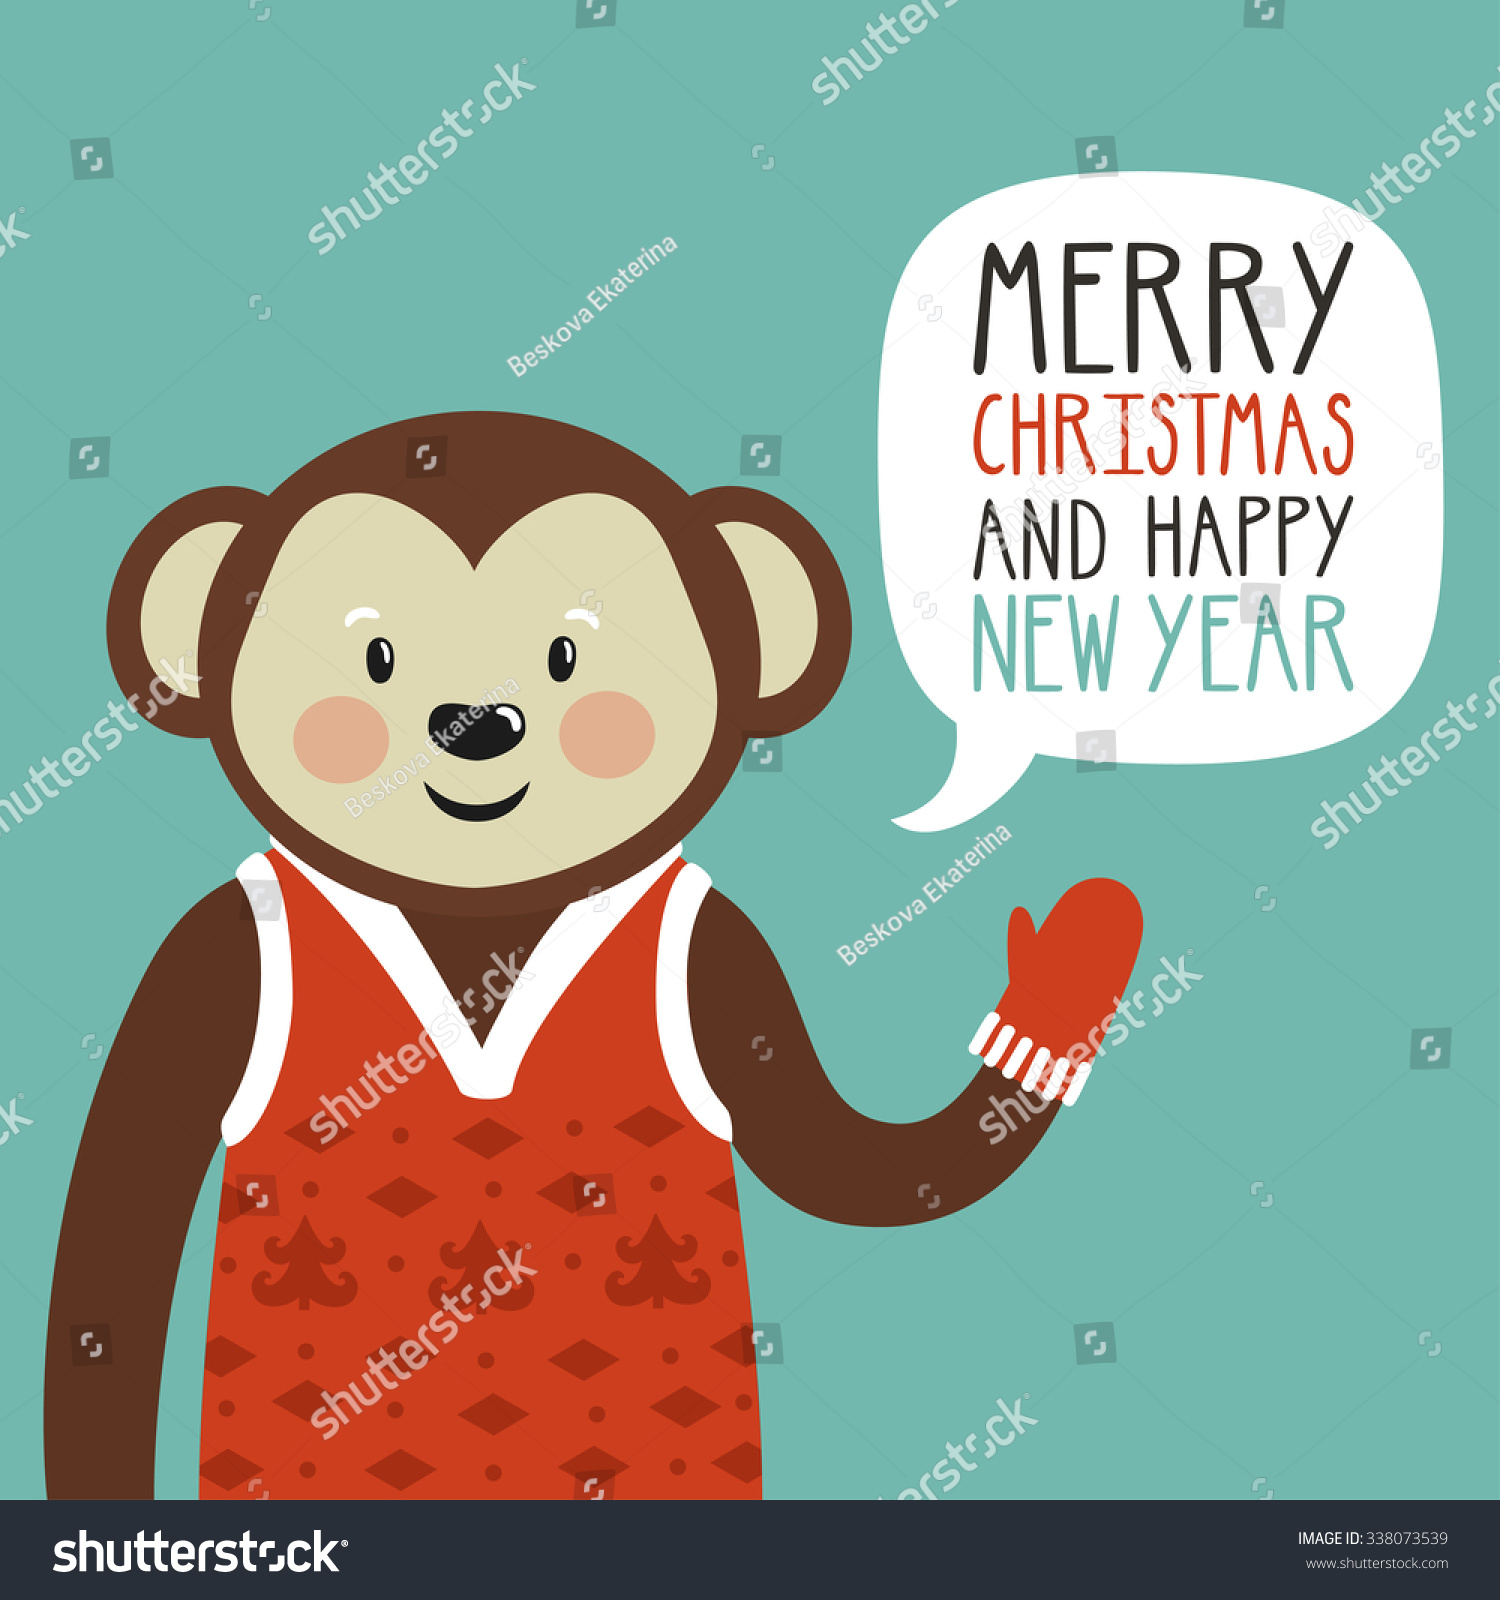 vector holiday illustration of a cute monkey in a red sweater saying merry christmas and